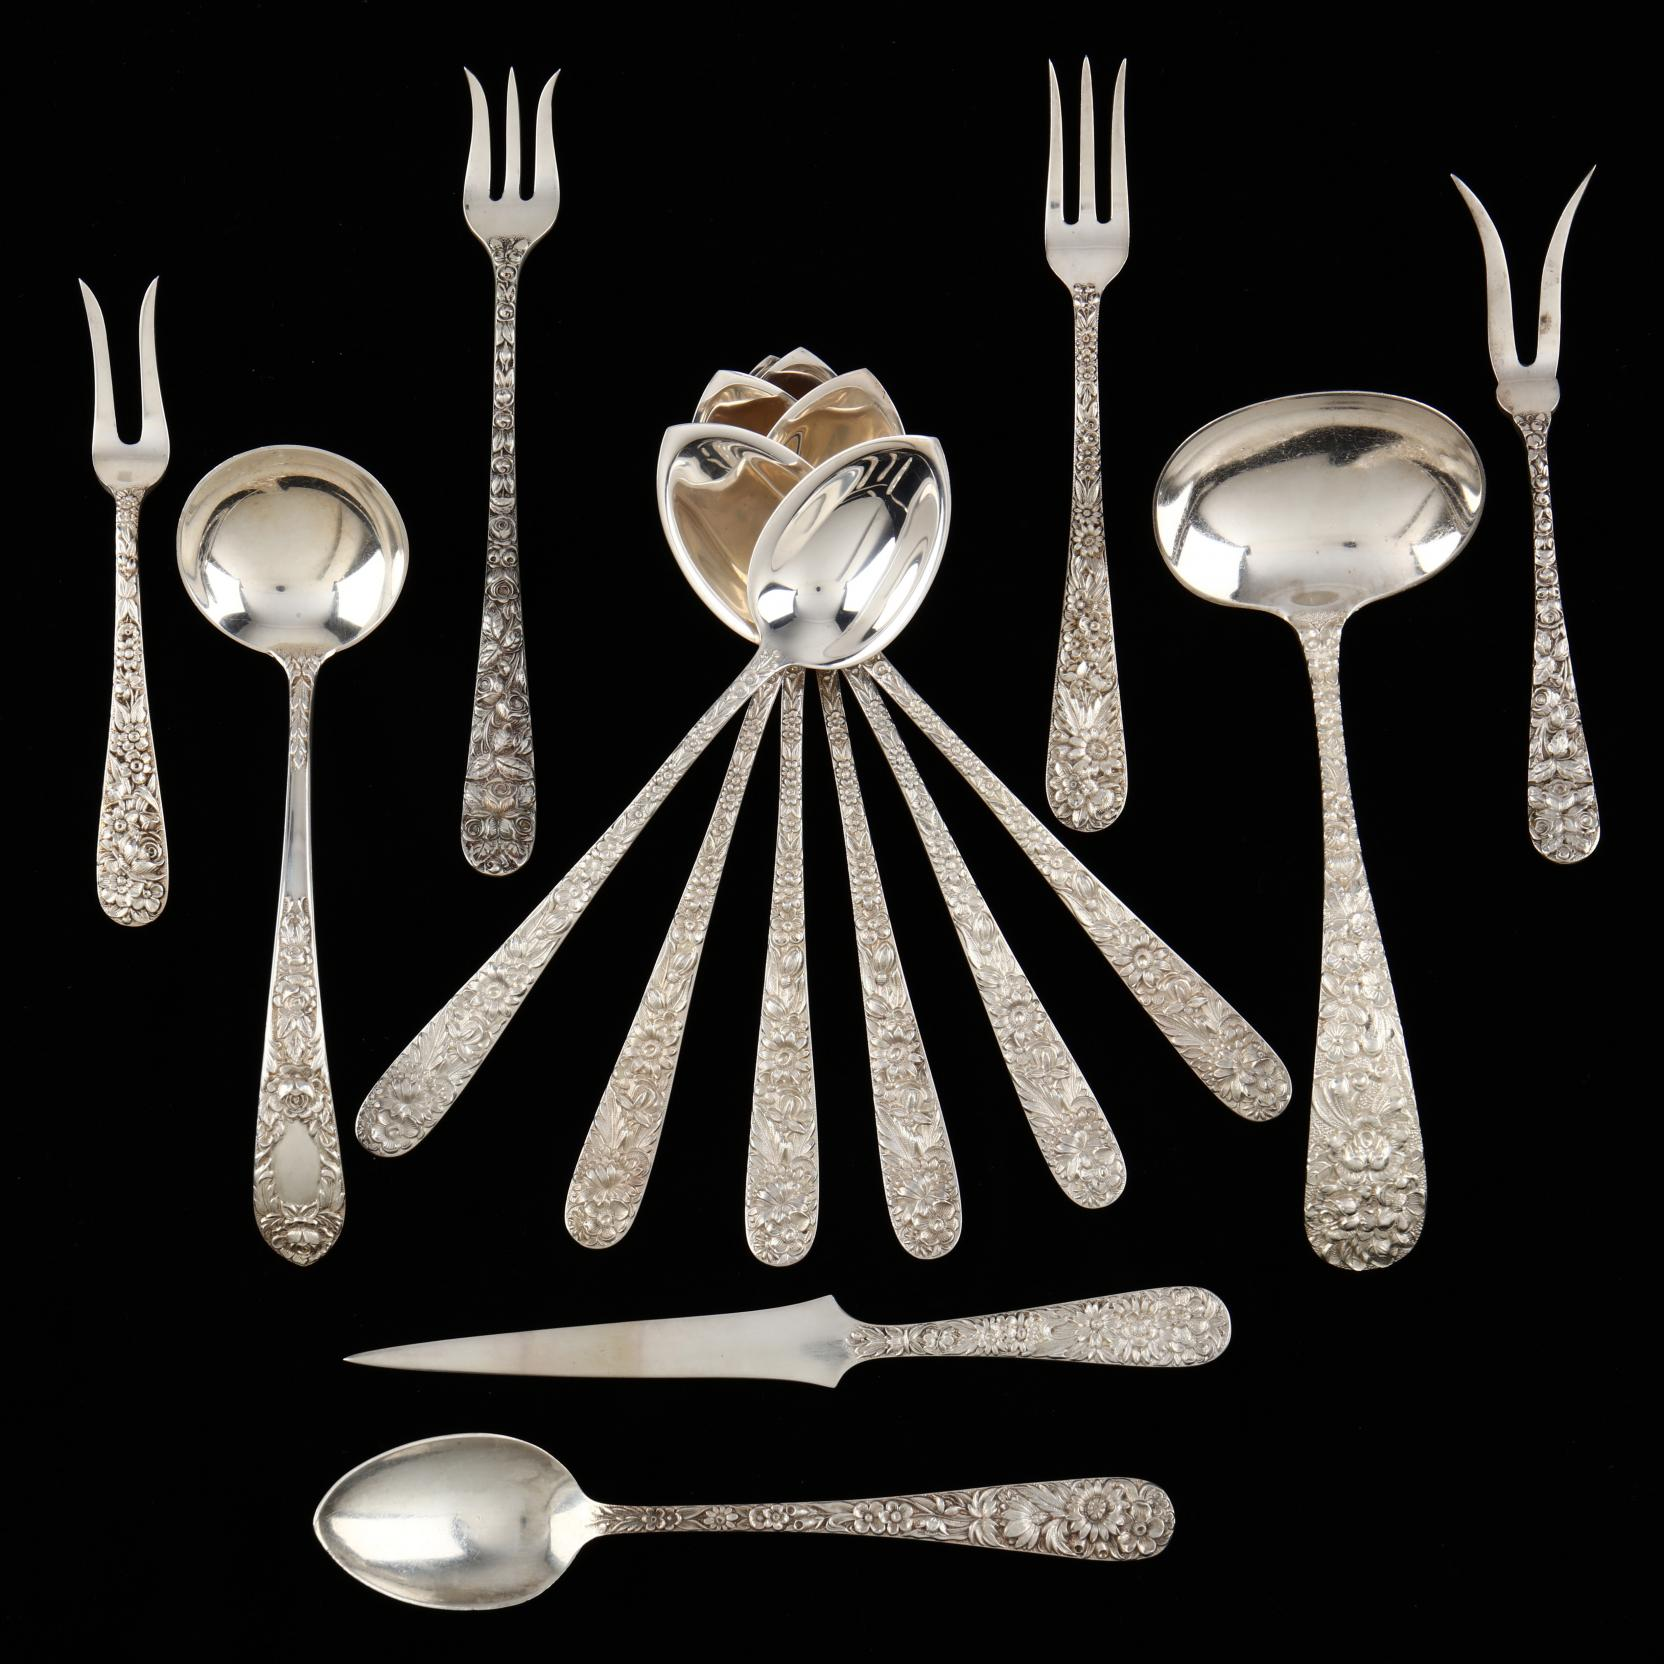 a-group-of-repousse-sterling-silver-flatware